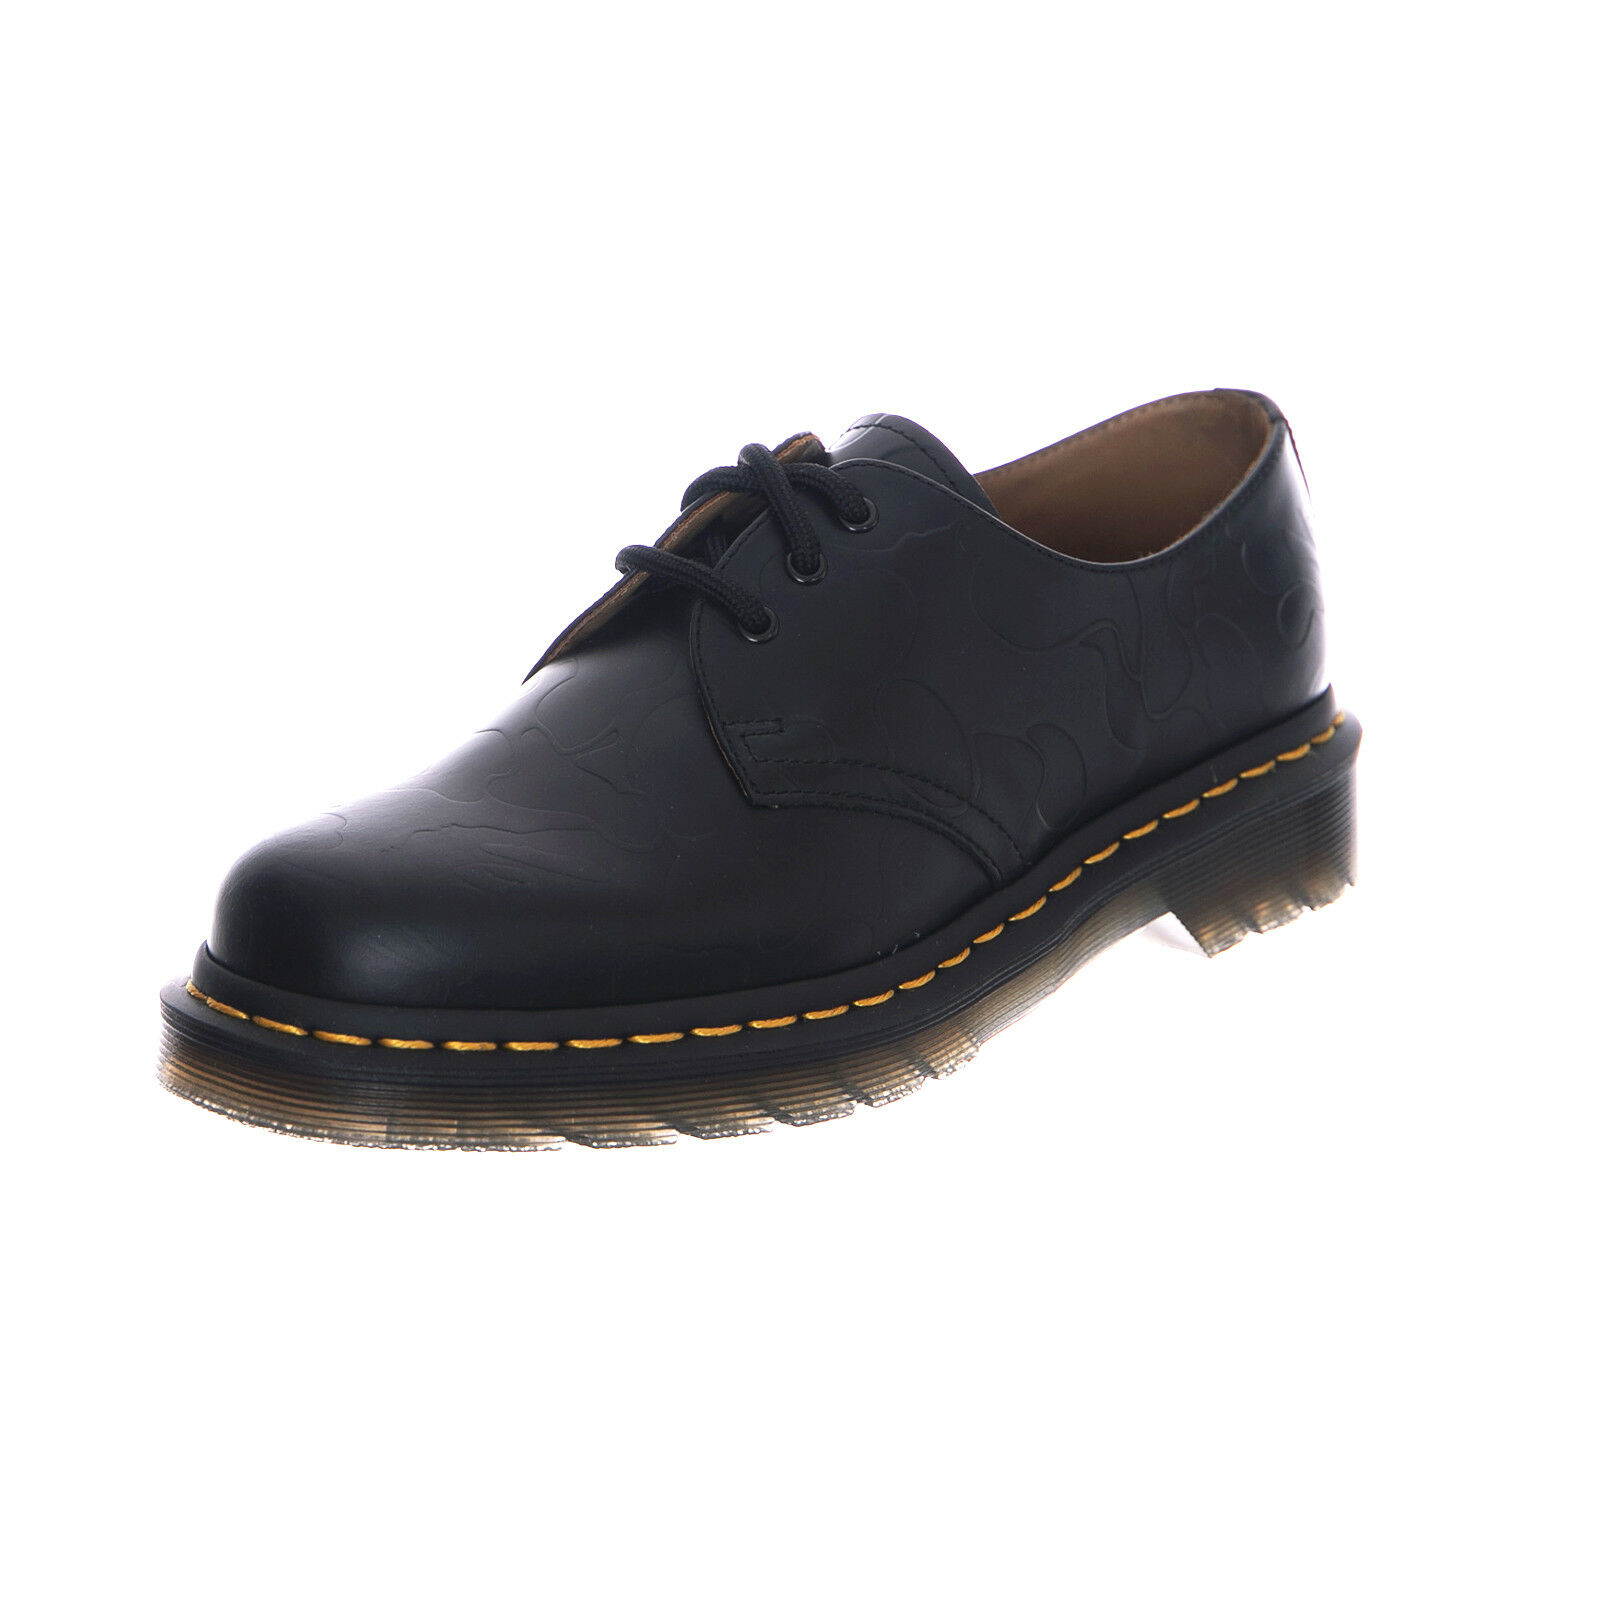 Dr.Martens zapatillas 1461 Bape negro Smooth Emboss Low Profile negro